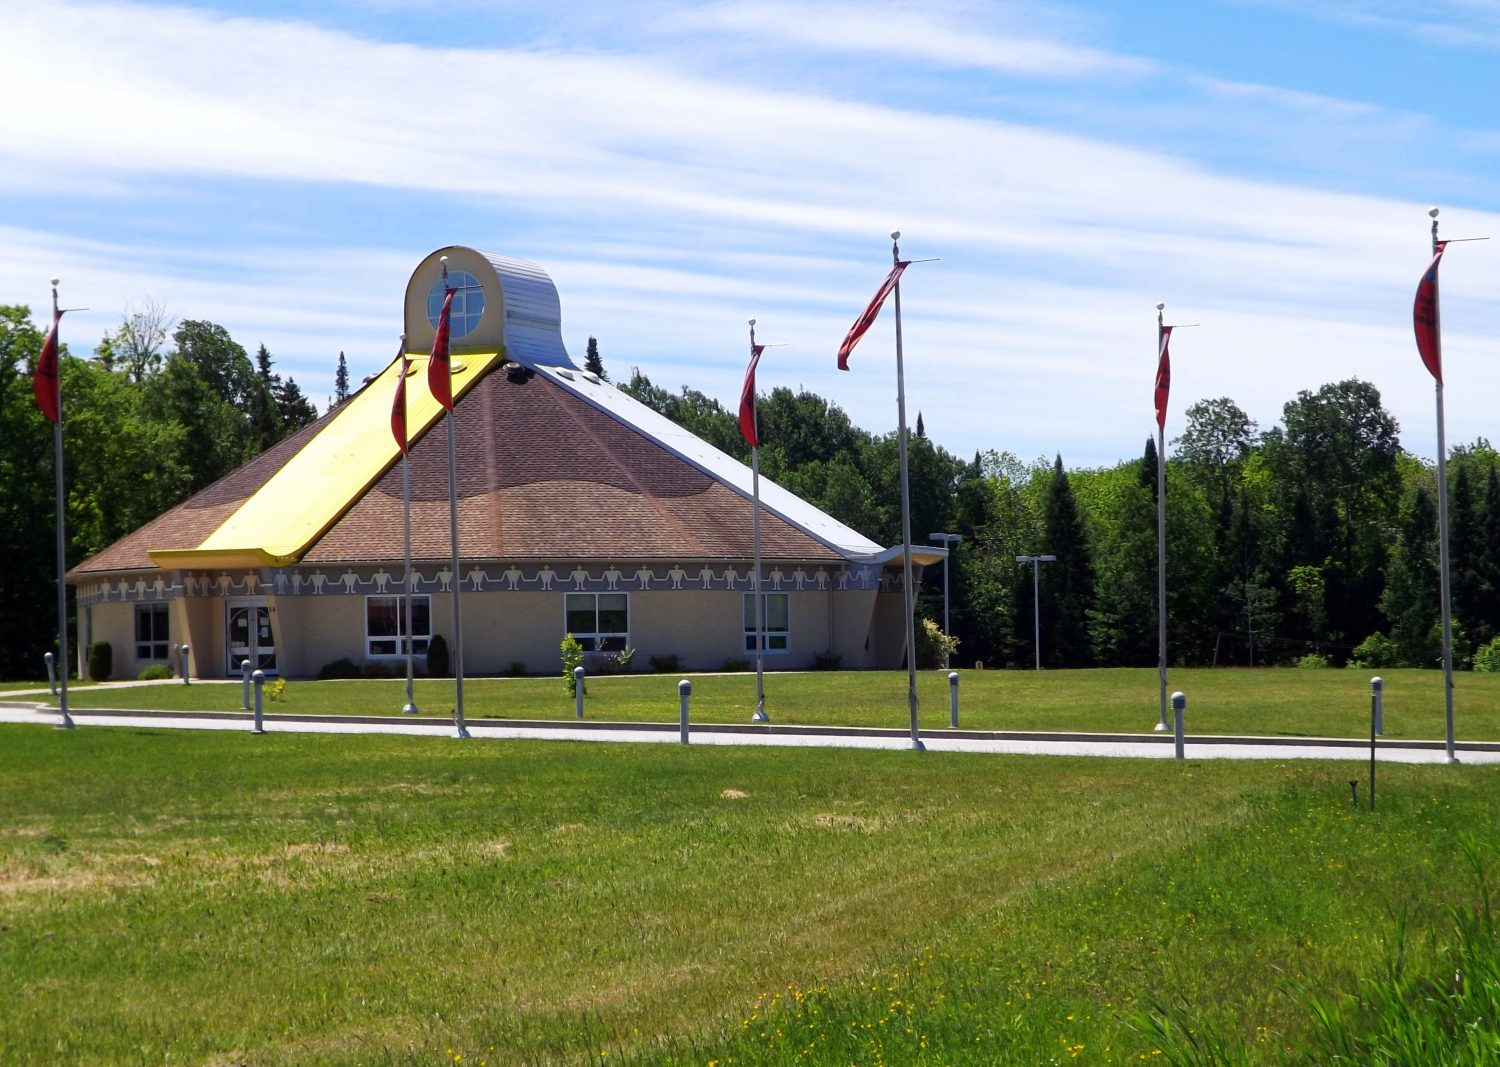 Centre culturel Kitigan Zibi Anishinabeg. ©Centre d'interprétation de l'historique de la protection de la forêt contre le feu, 2016